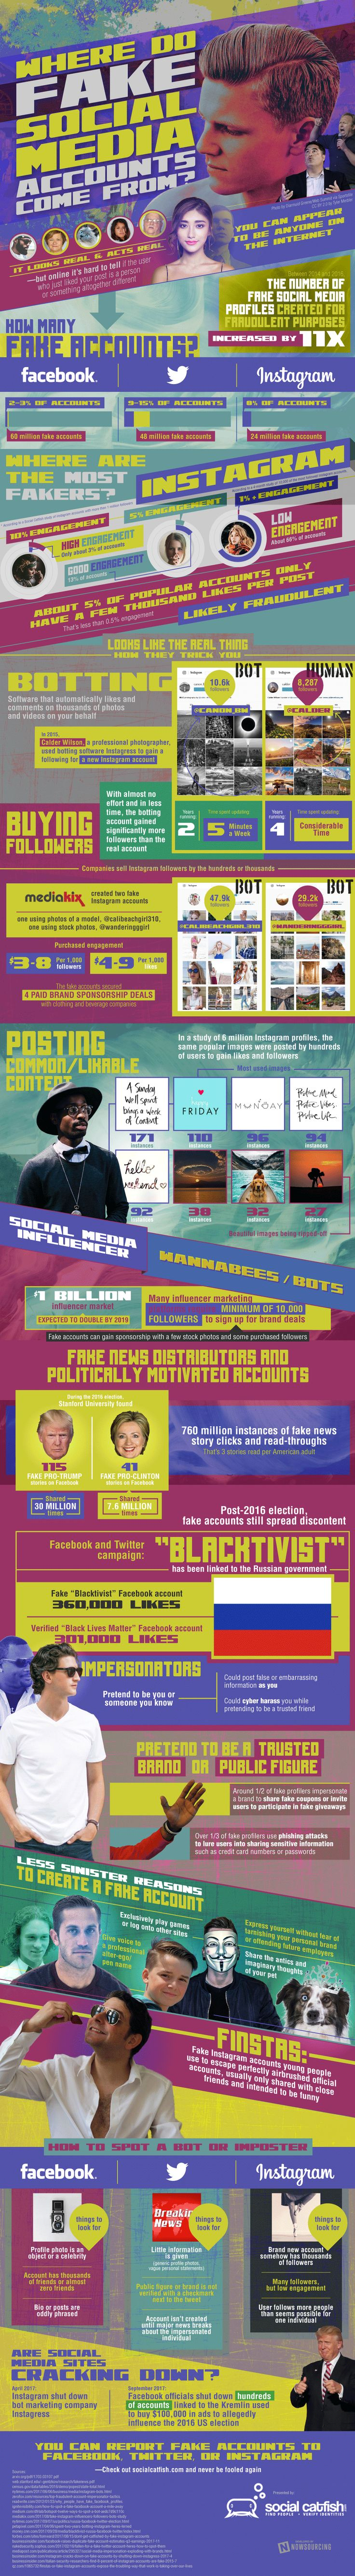 Where Do Fake Social Media Accounts Come From? #infographic #SocialMedia #FakeAccouns #Twitter #Facebook #Instagram